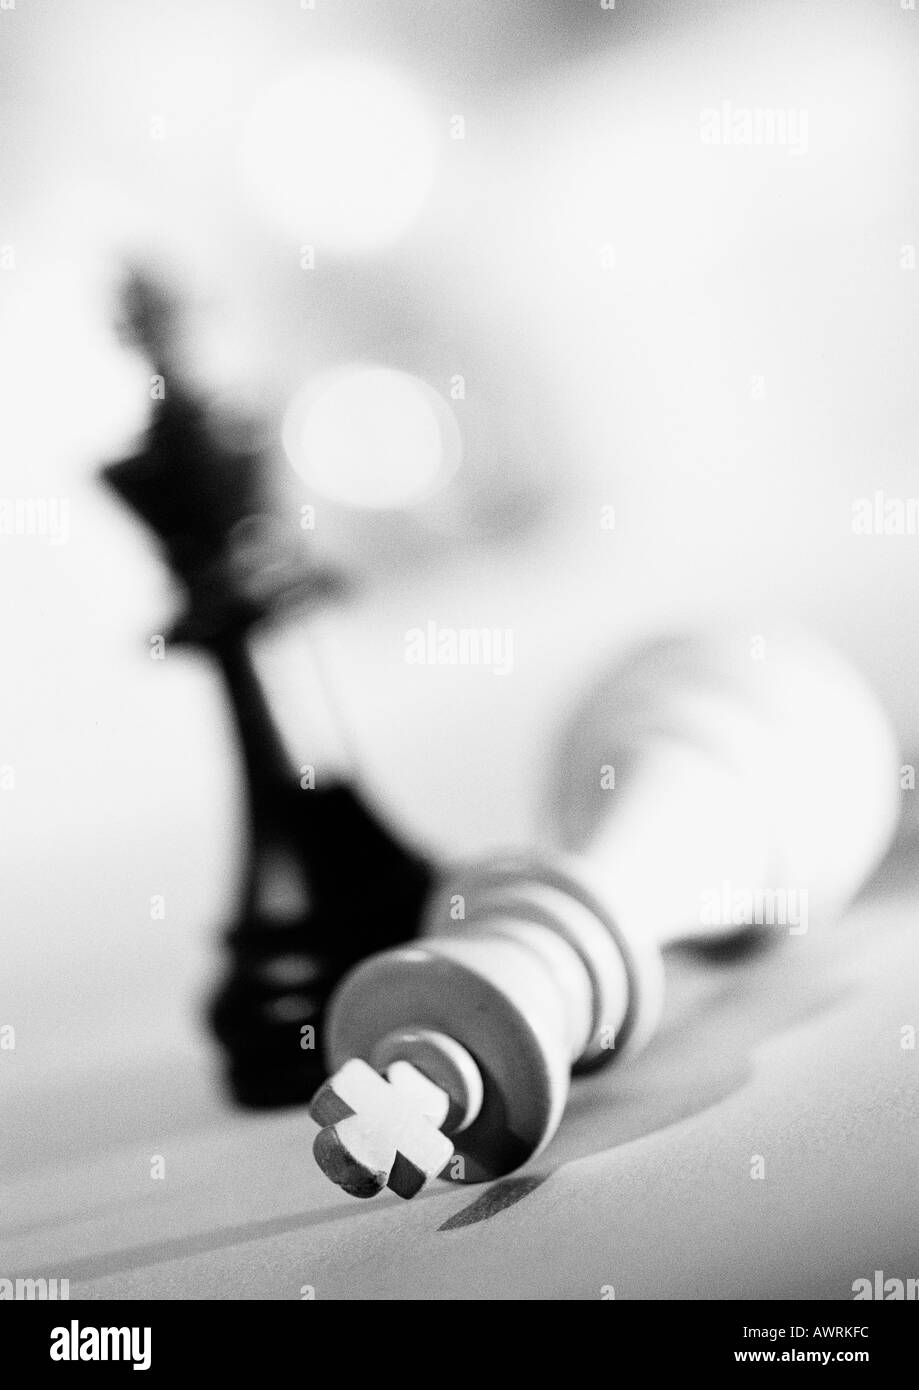 Pieces from chess set, b&w. - Stock Image